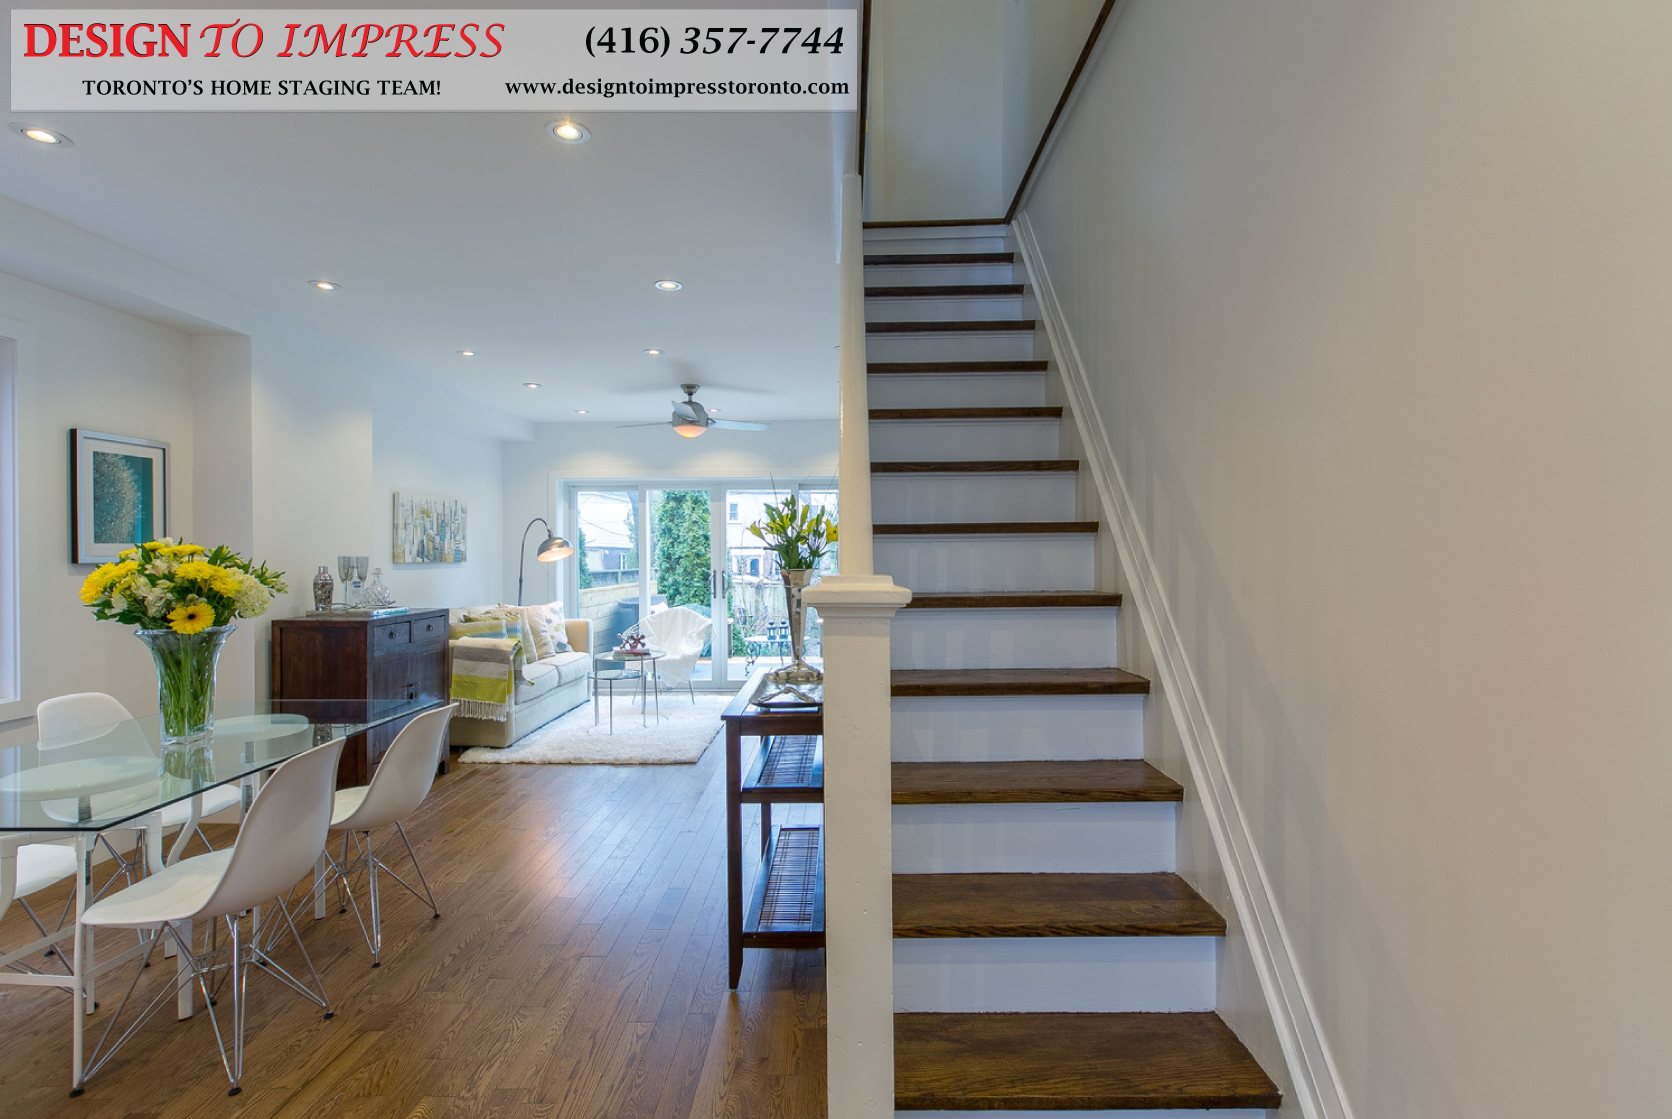 Stairs, 291 Springdale, Toronto Home Staging